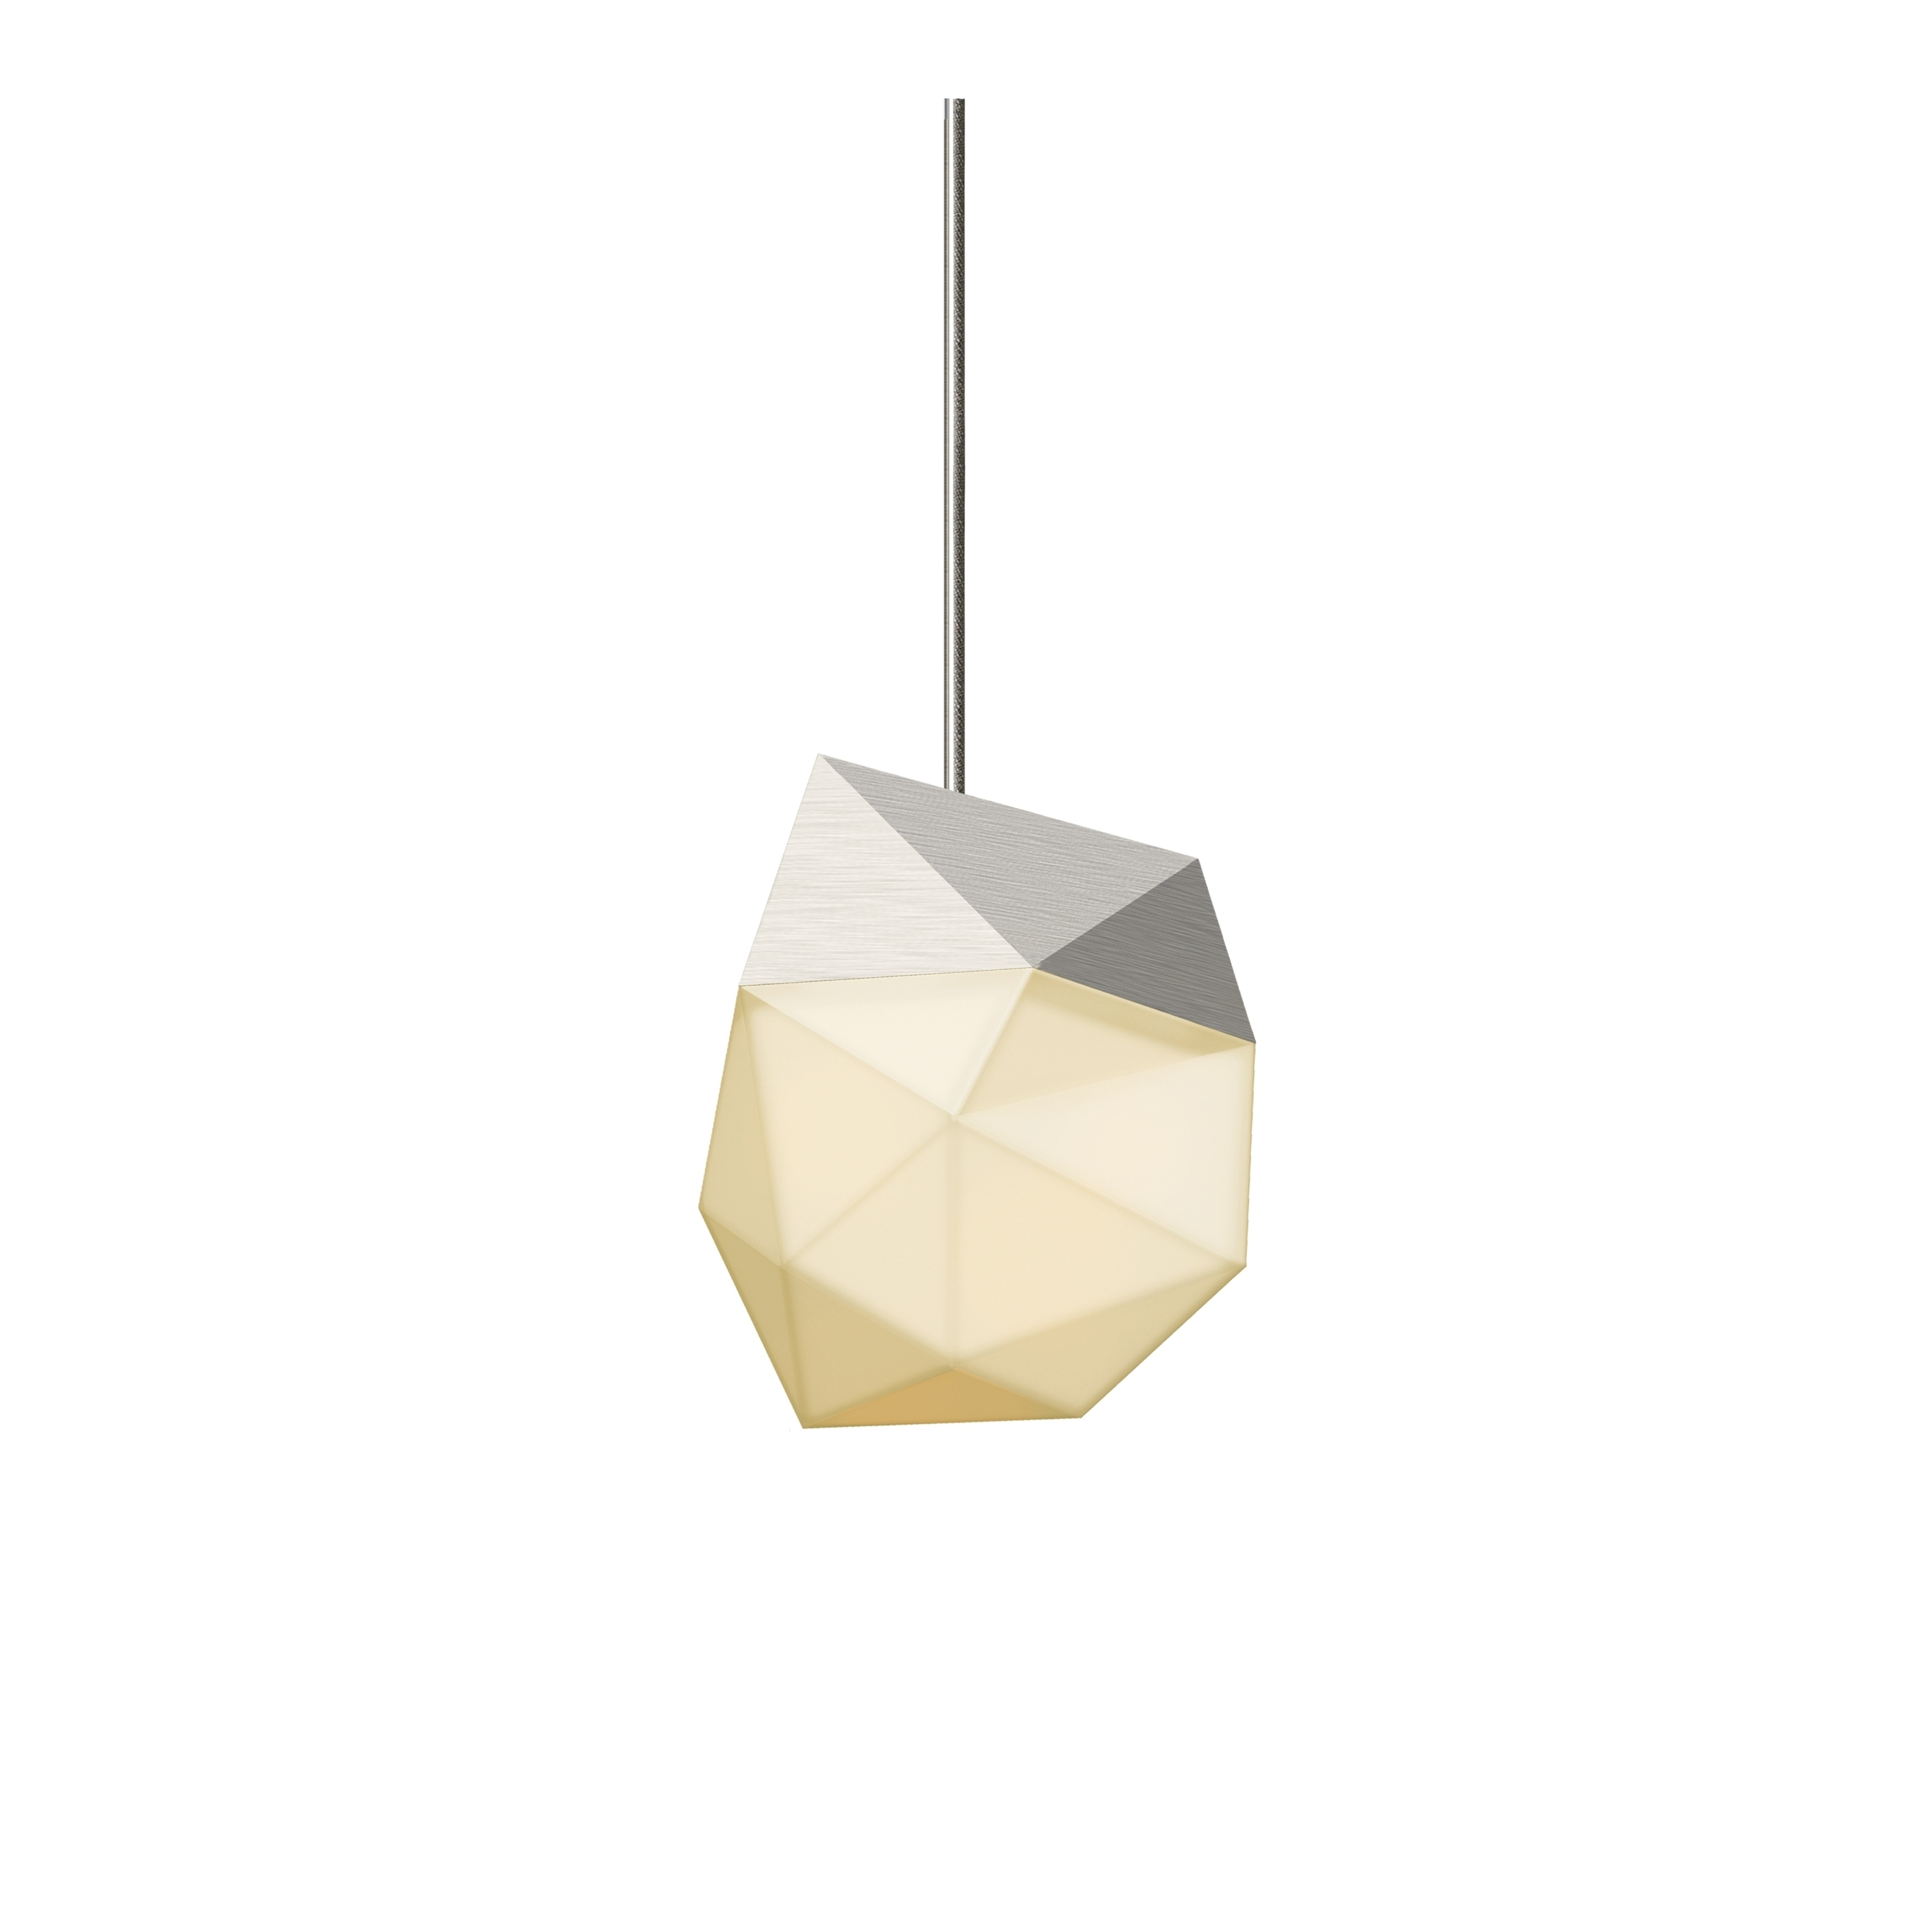 Sonneman Lighting Facets 1 Light Satin Nickel Small Led Pendant, White